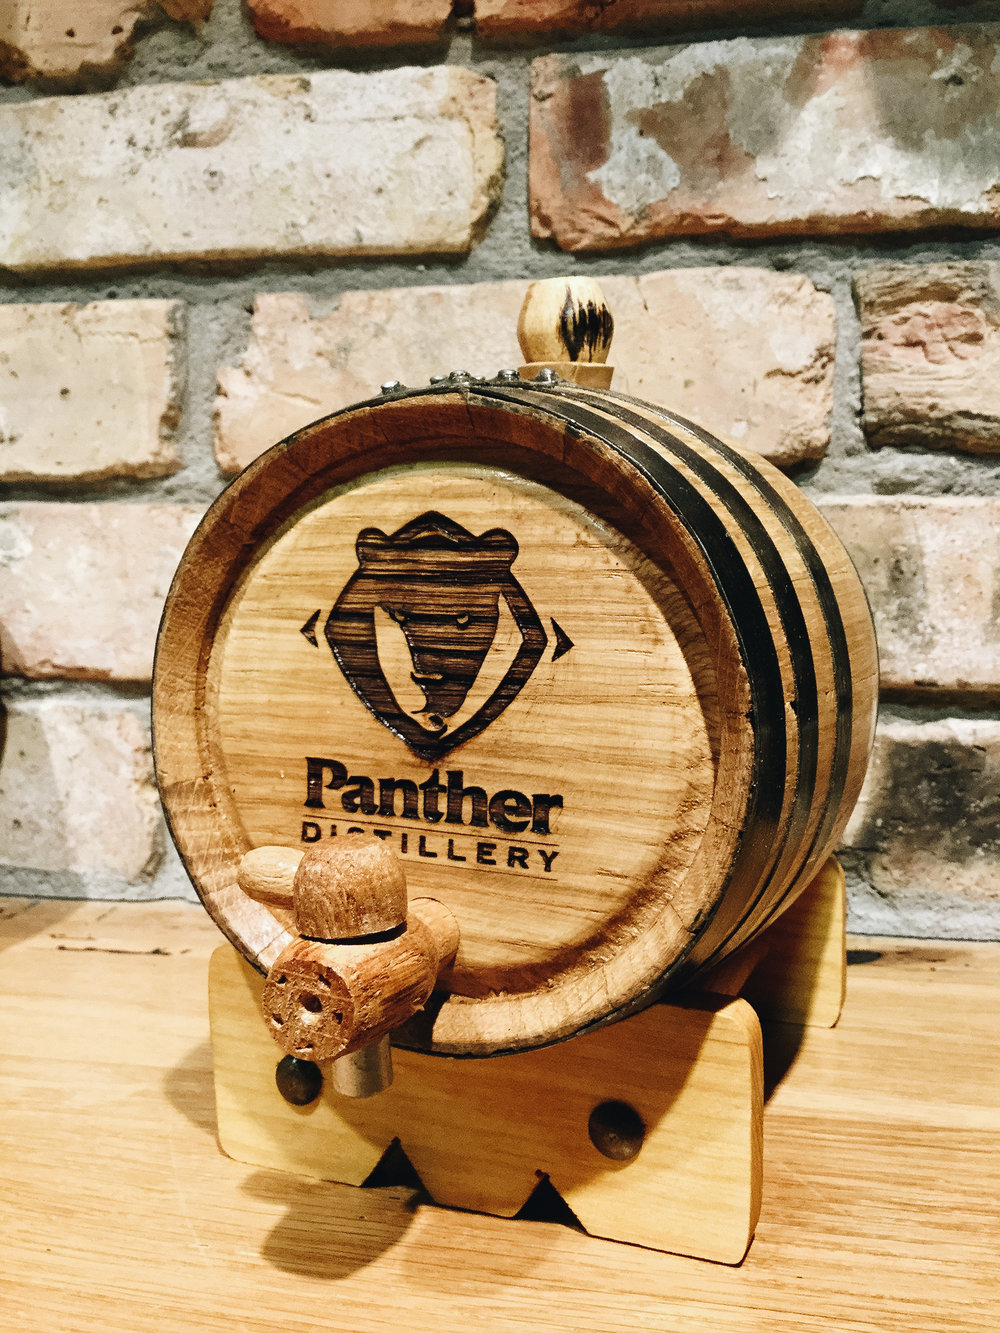 Mini Barrel. Age a bottle of White Water Whiskey for one month to get the equivalent of our two year aged Minnesota 14! Panther Distillery Mini Barrel